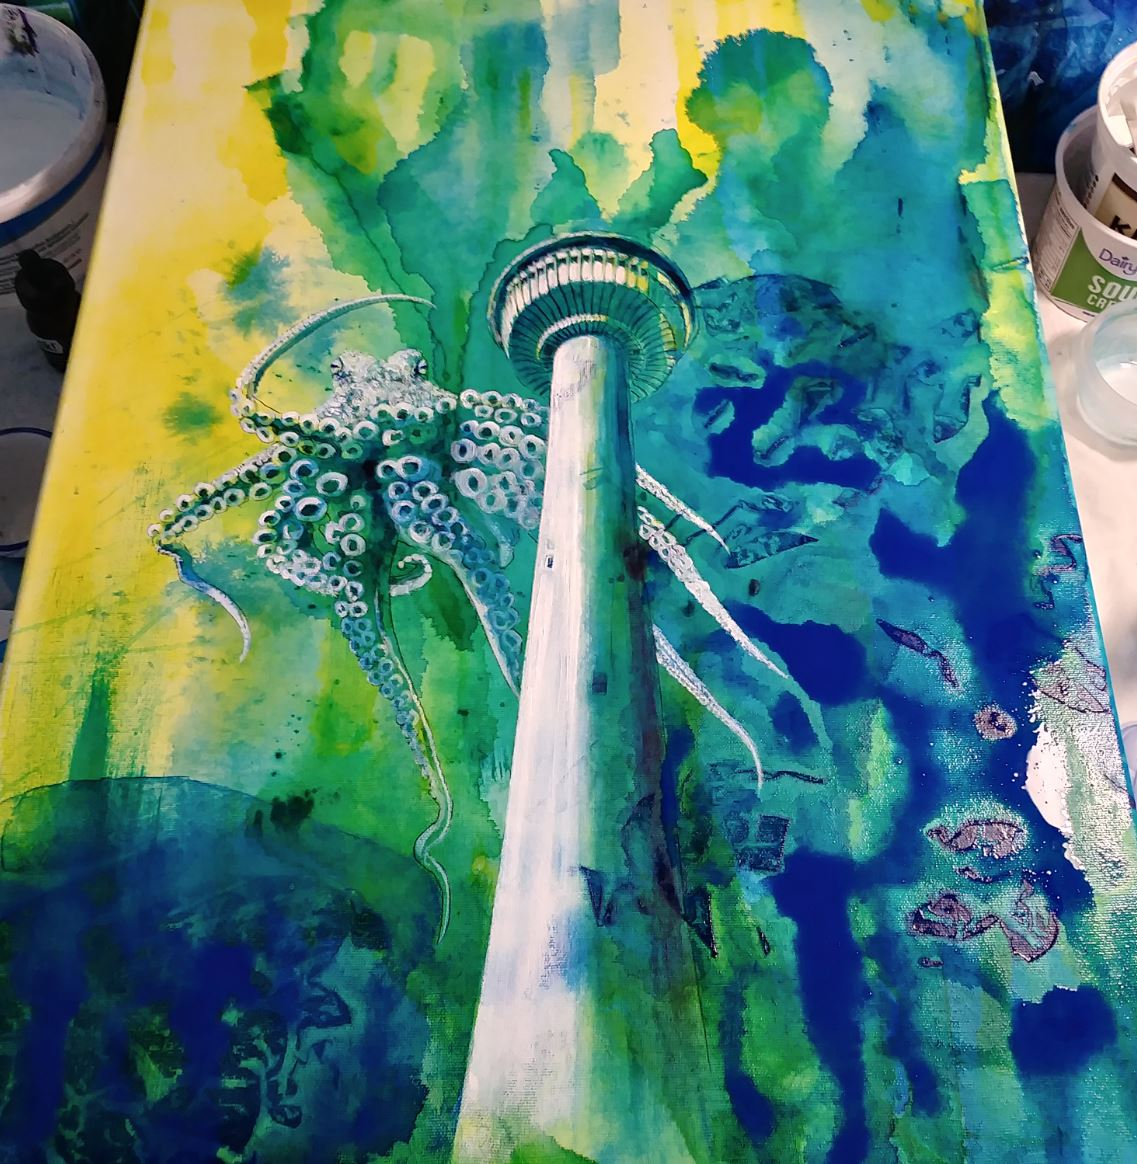 0950 octopus and the calgary tower elisa friesen august 7 2018.JPG